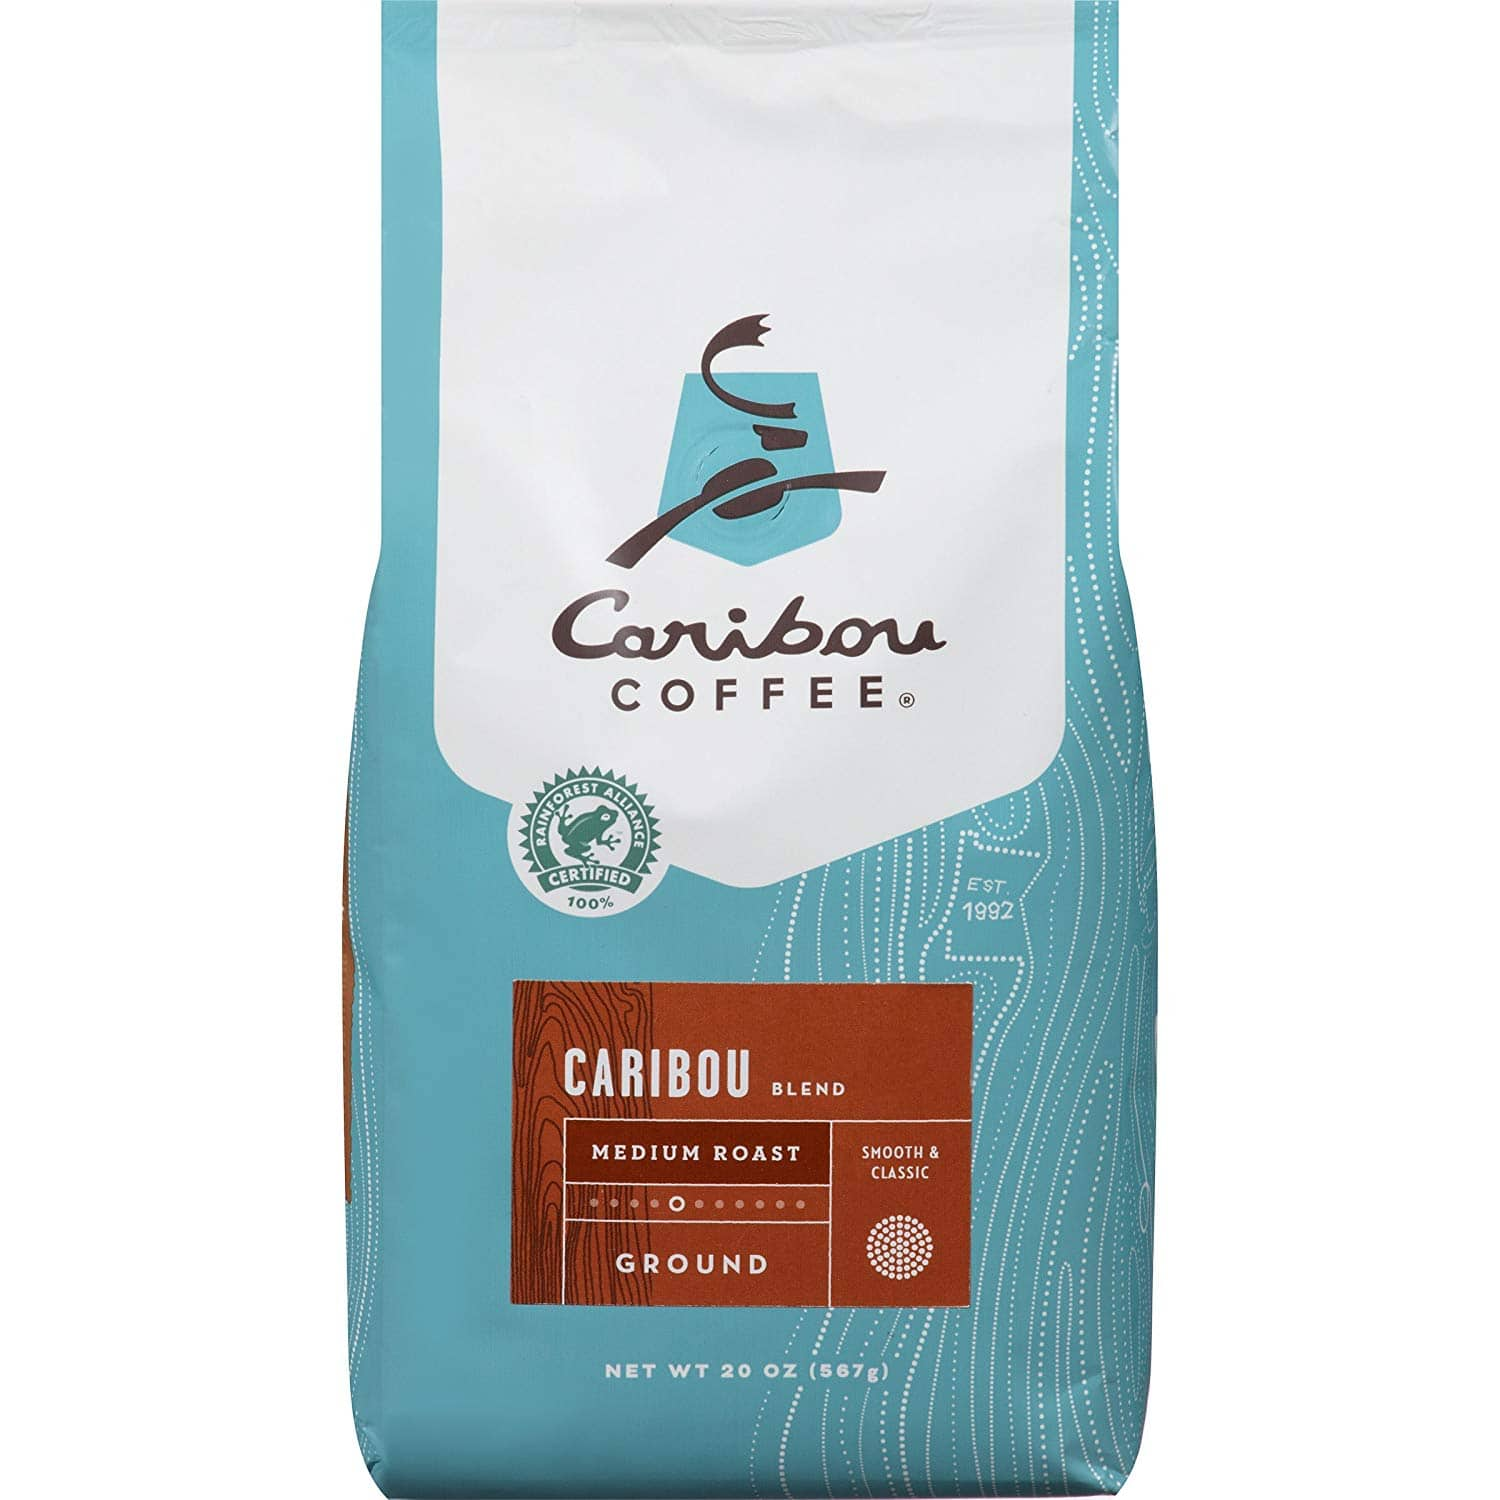 20-oz Caribou Coffee Caribou Blend $4.32 @ Amazon Warehouse